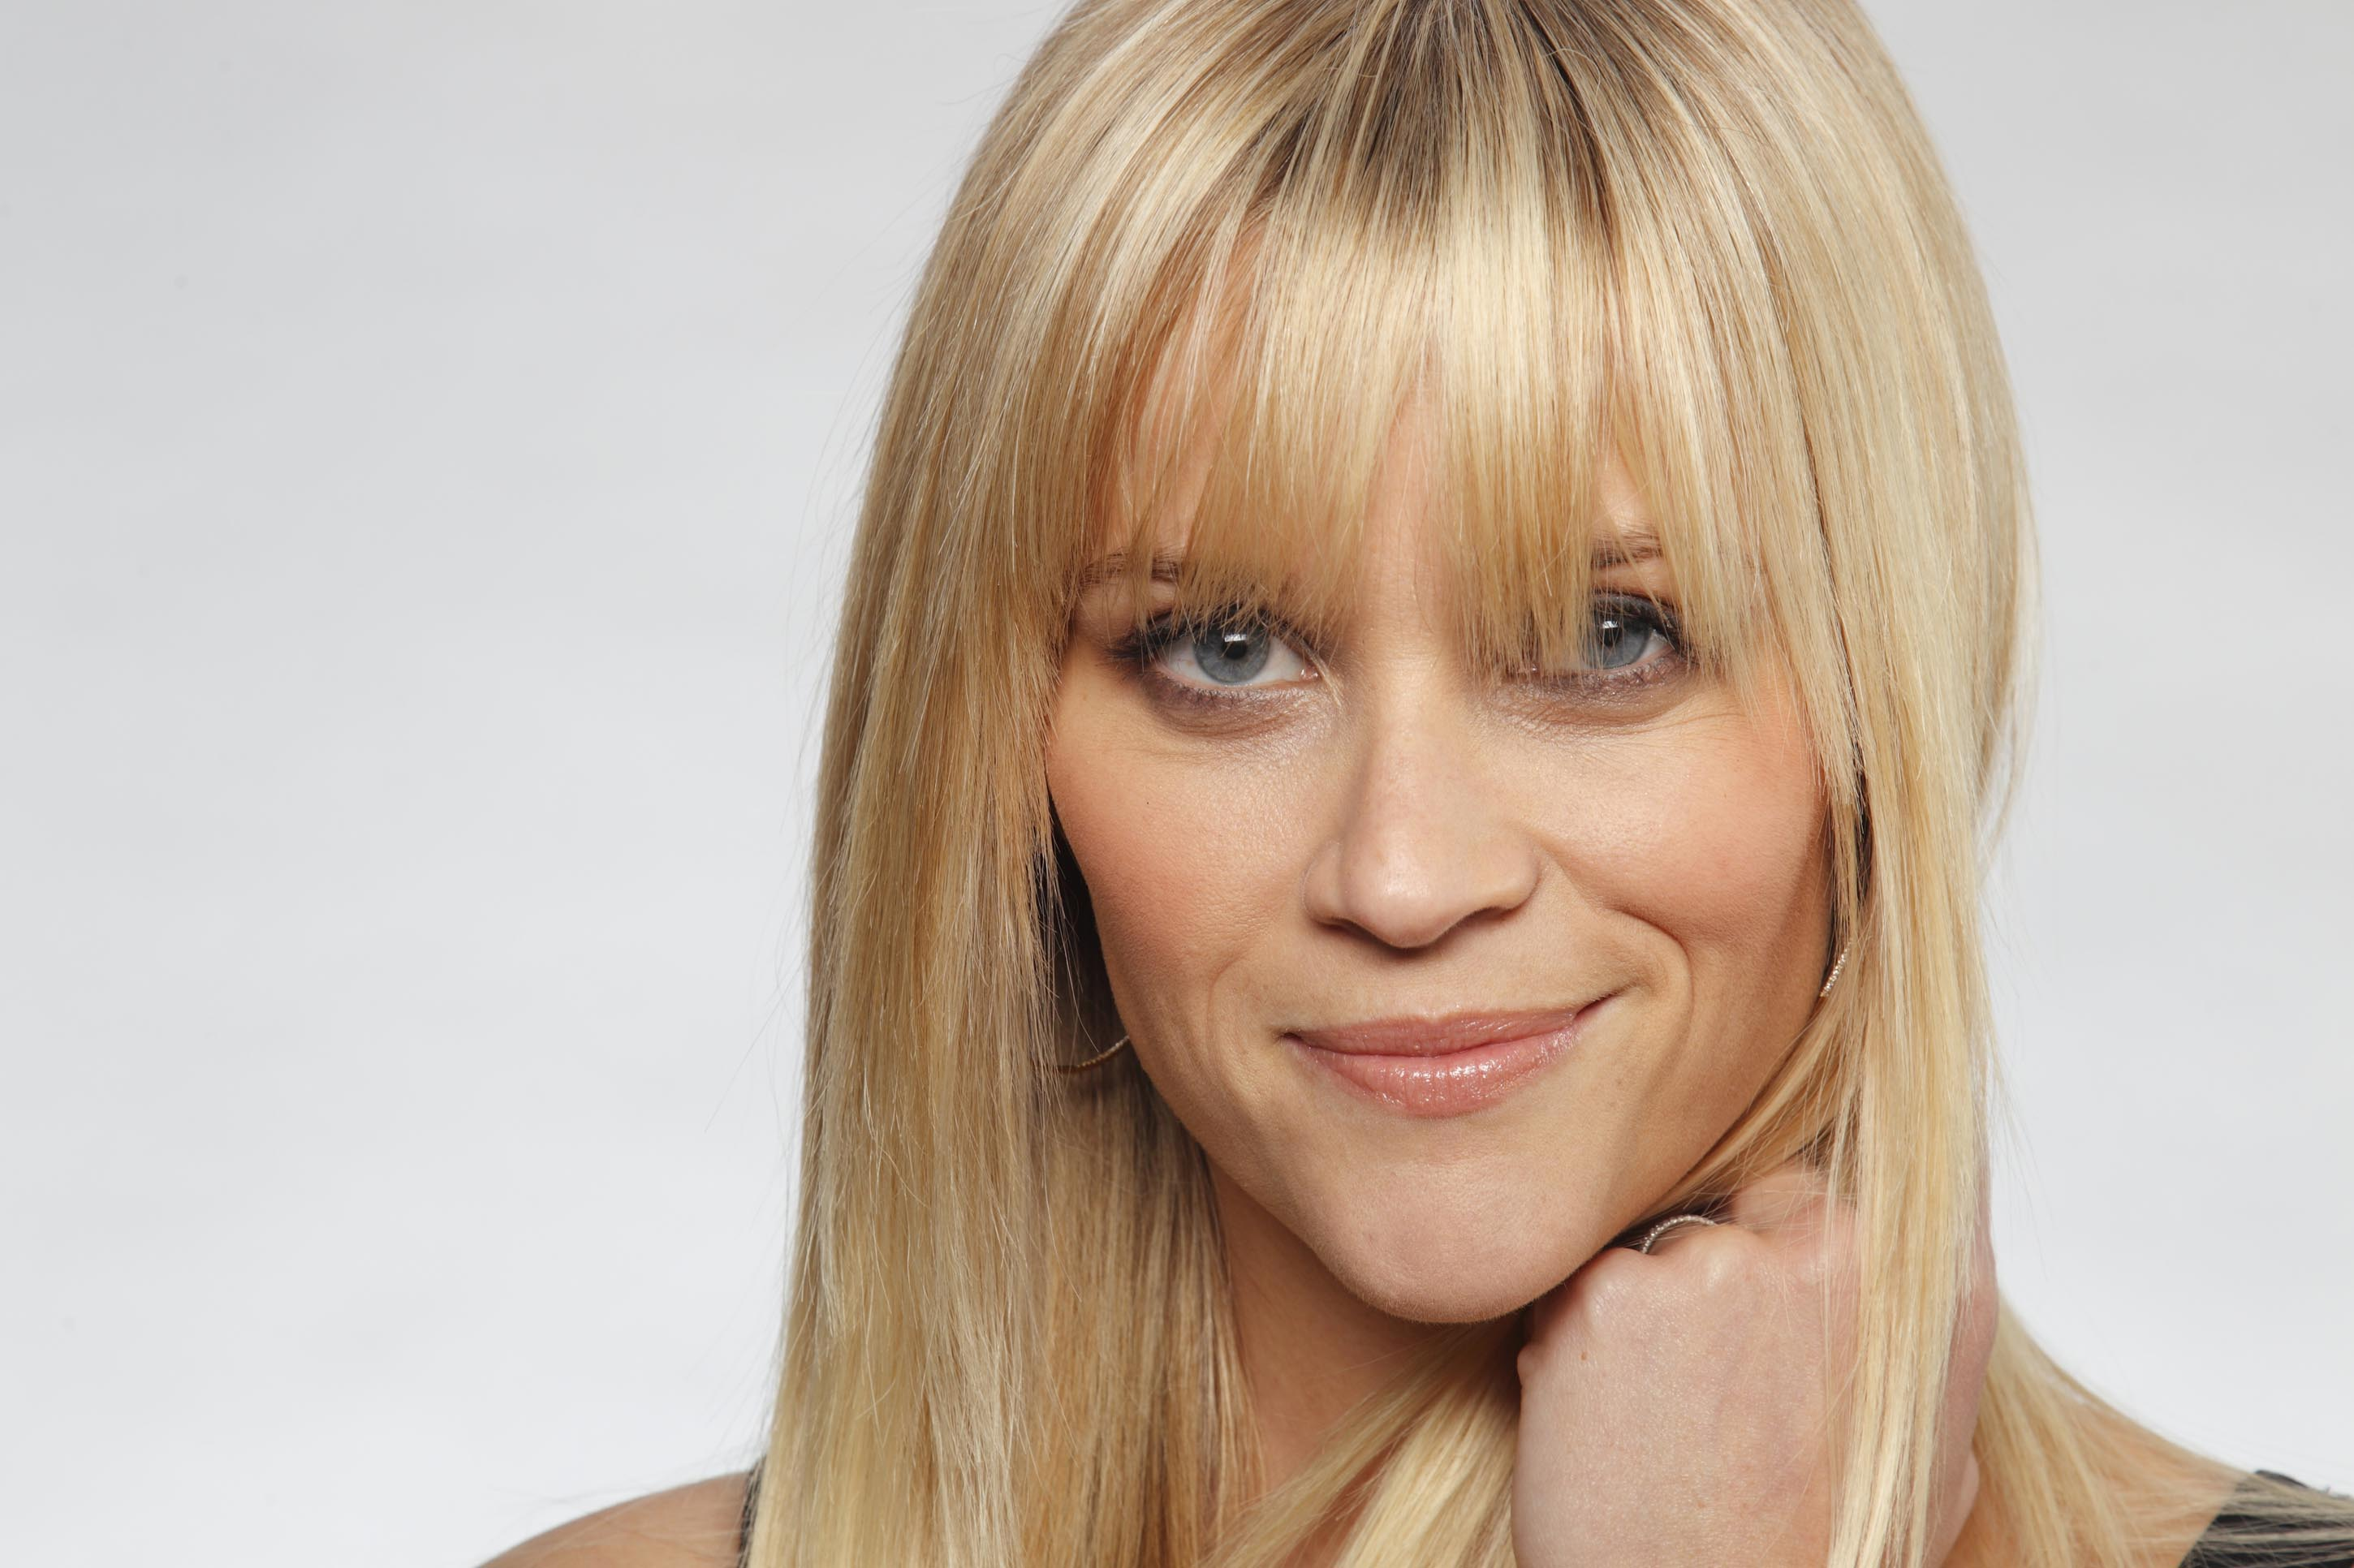 Reese Witherspoon wallpaper (22 images) pictures download